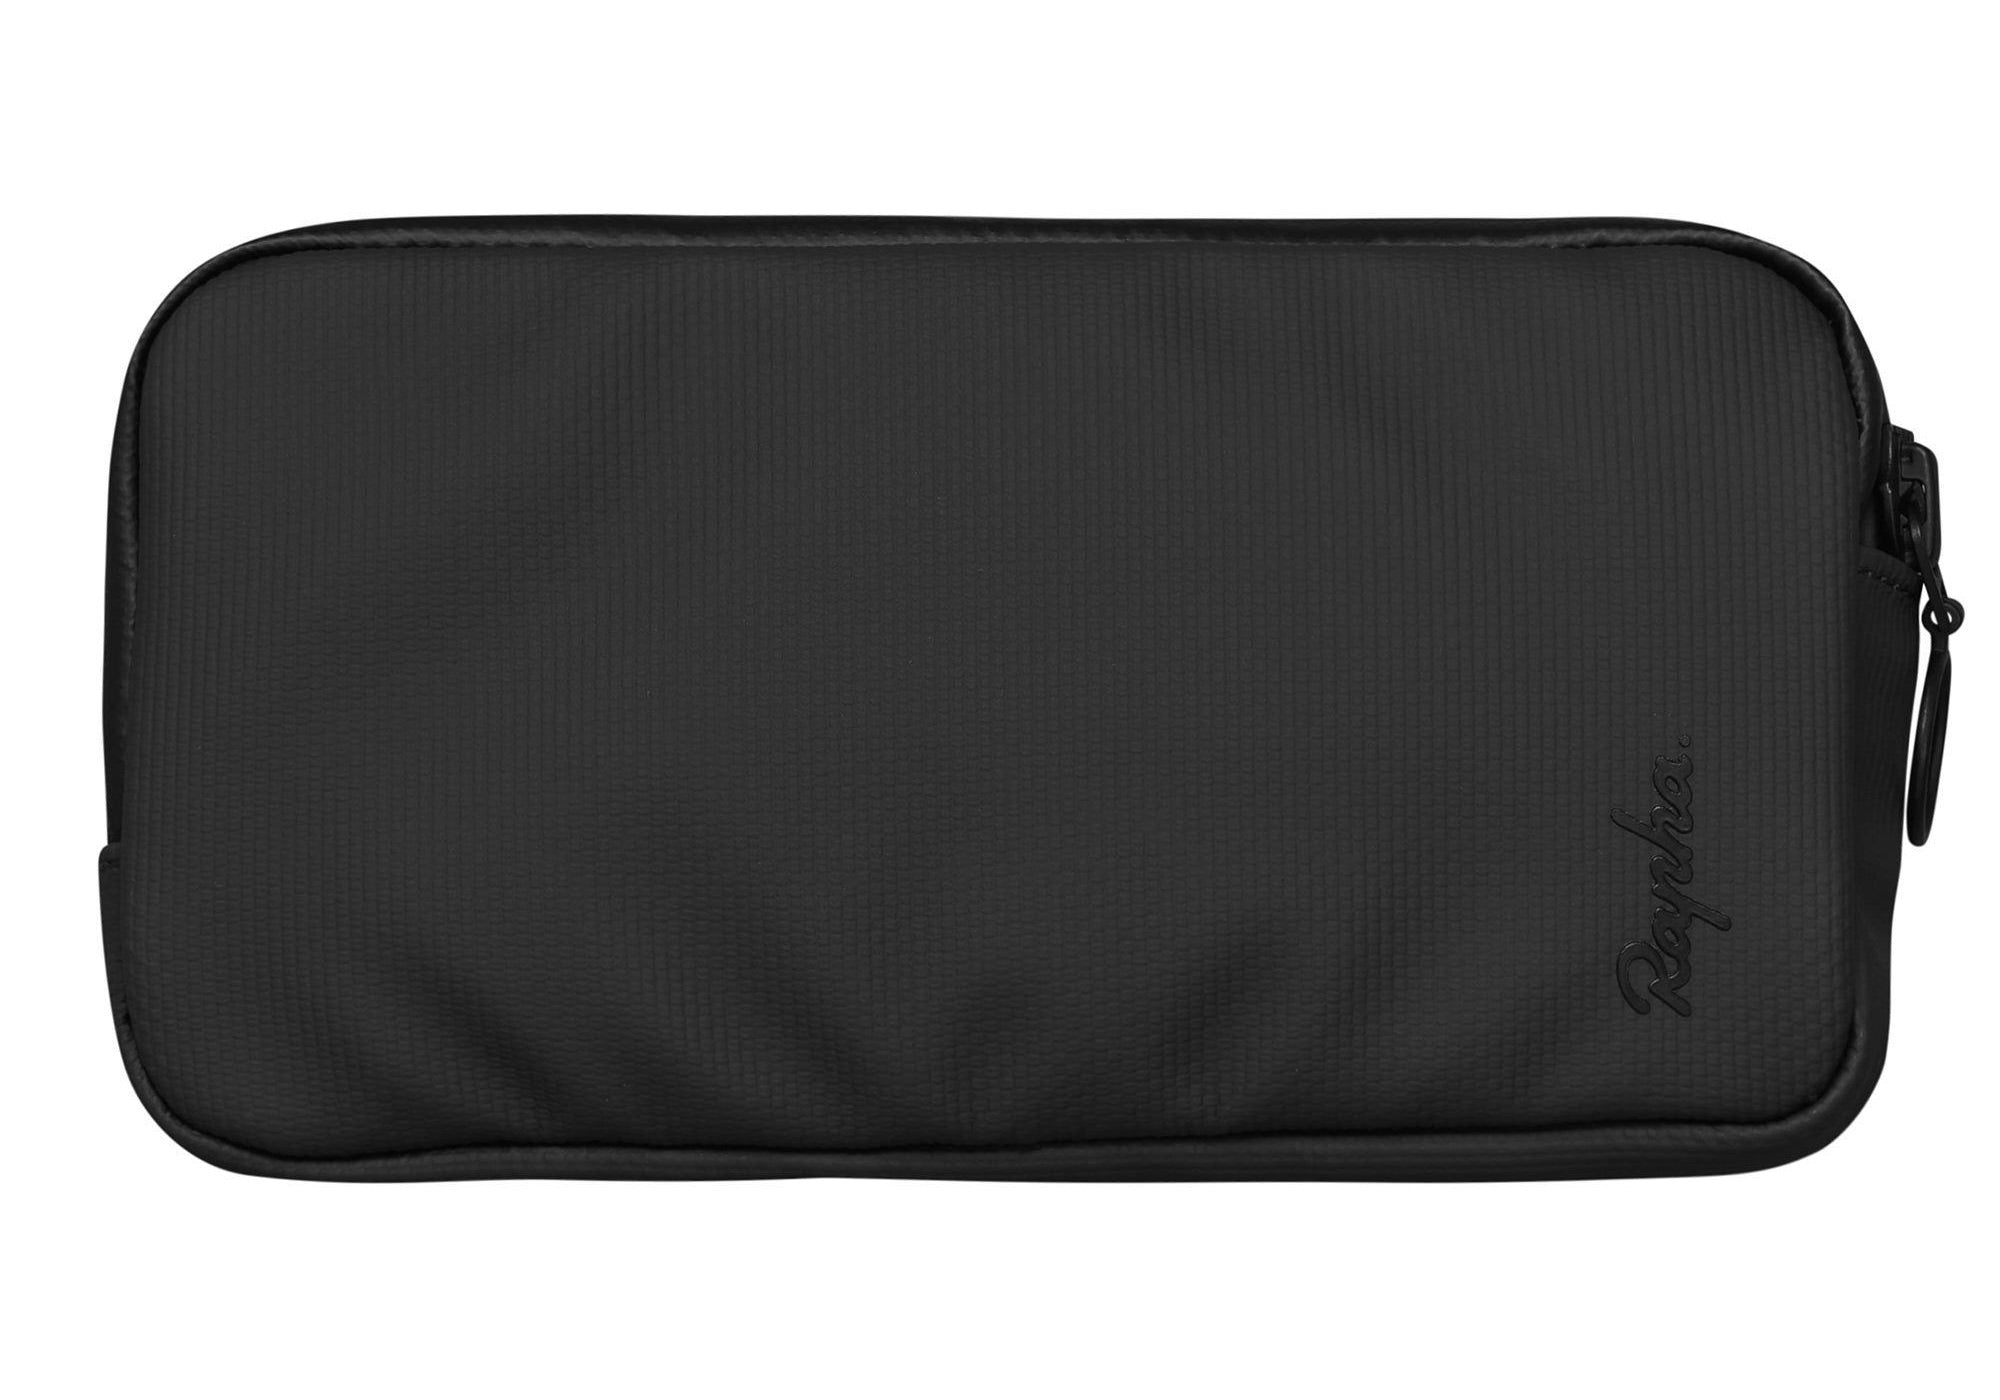 Rapha Rainproof Essentials Case - Large buy at Woolys Wheels Sydney